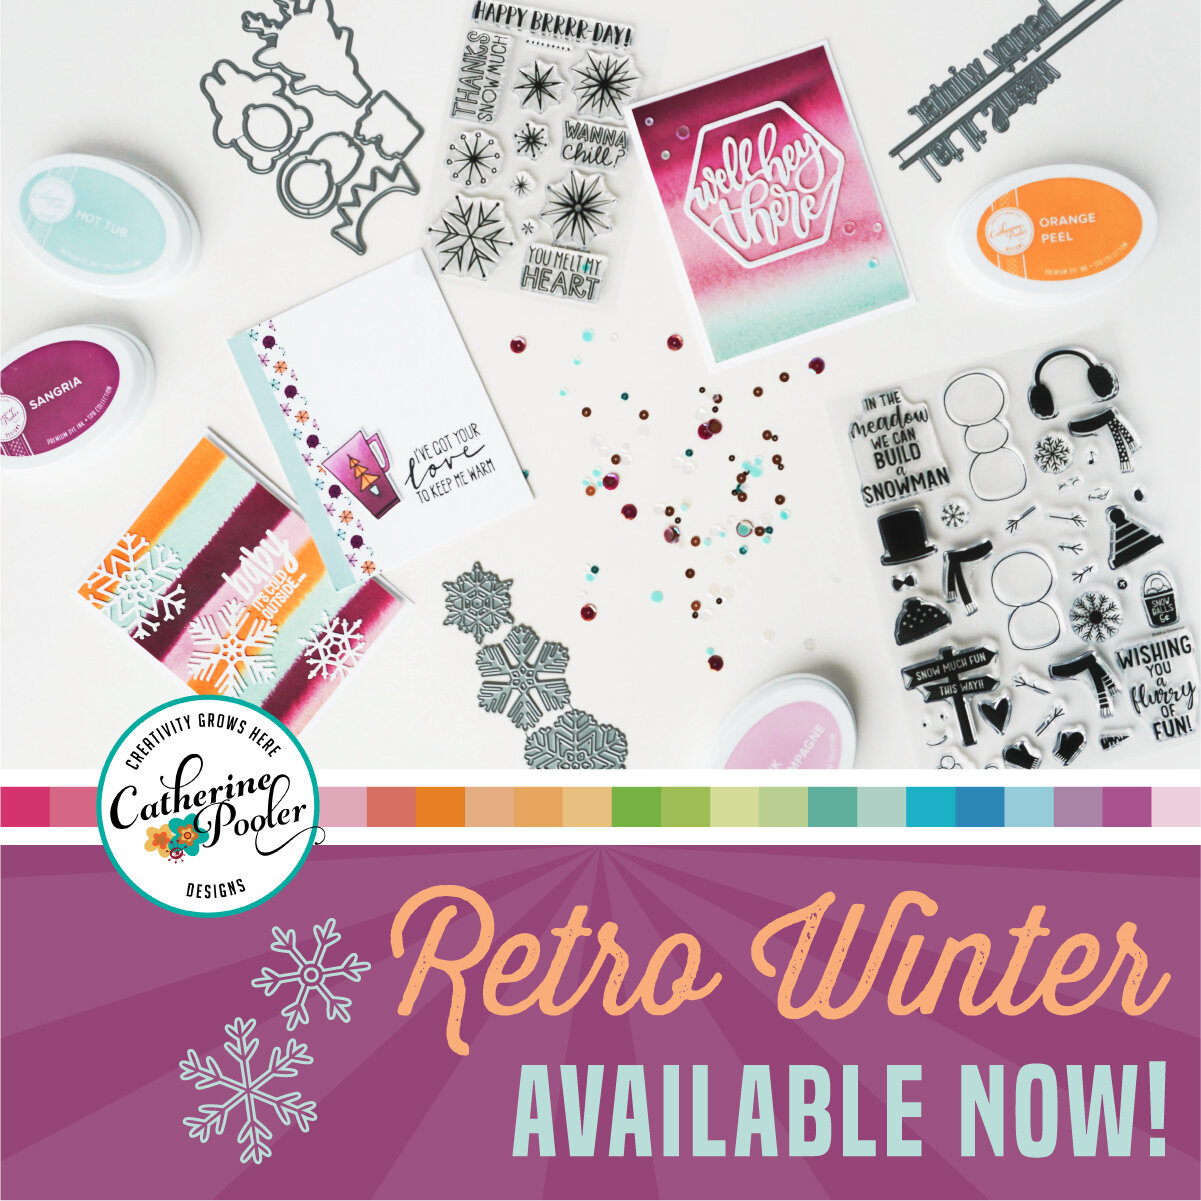 Retro Winter_Available Now_Instagram Square.jpg